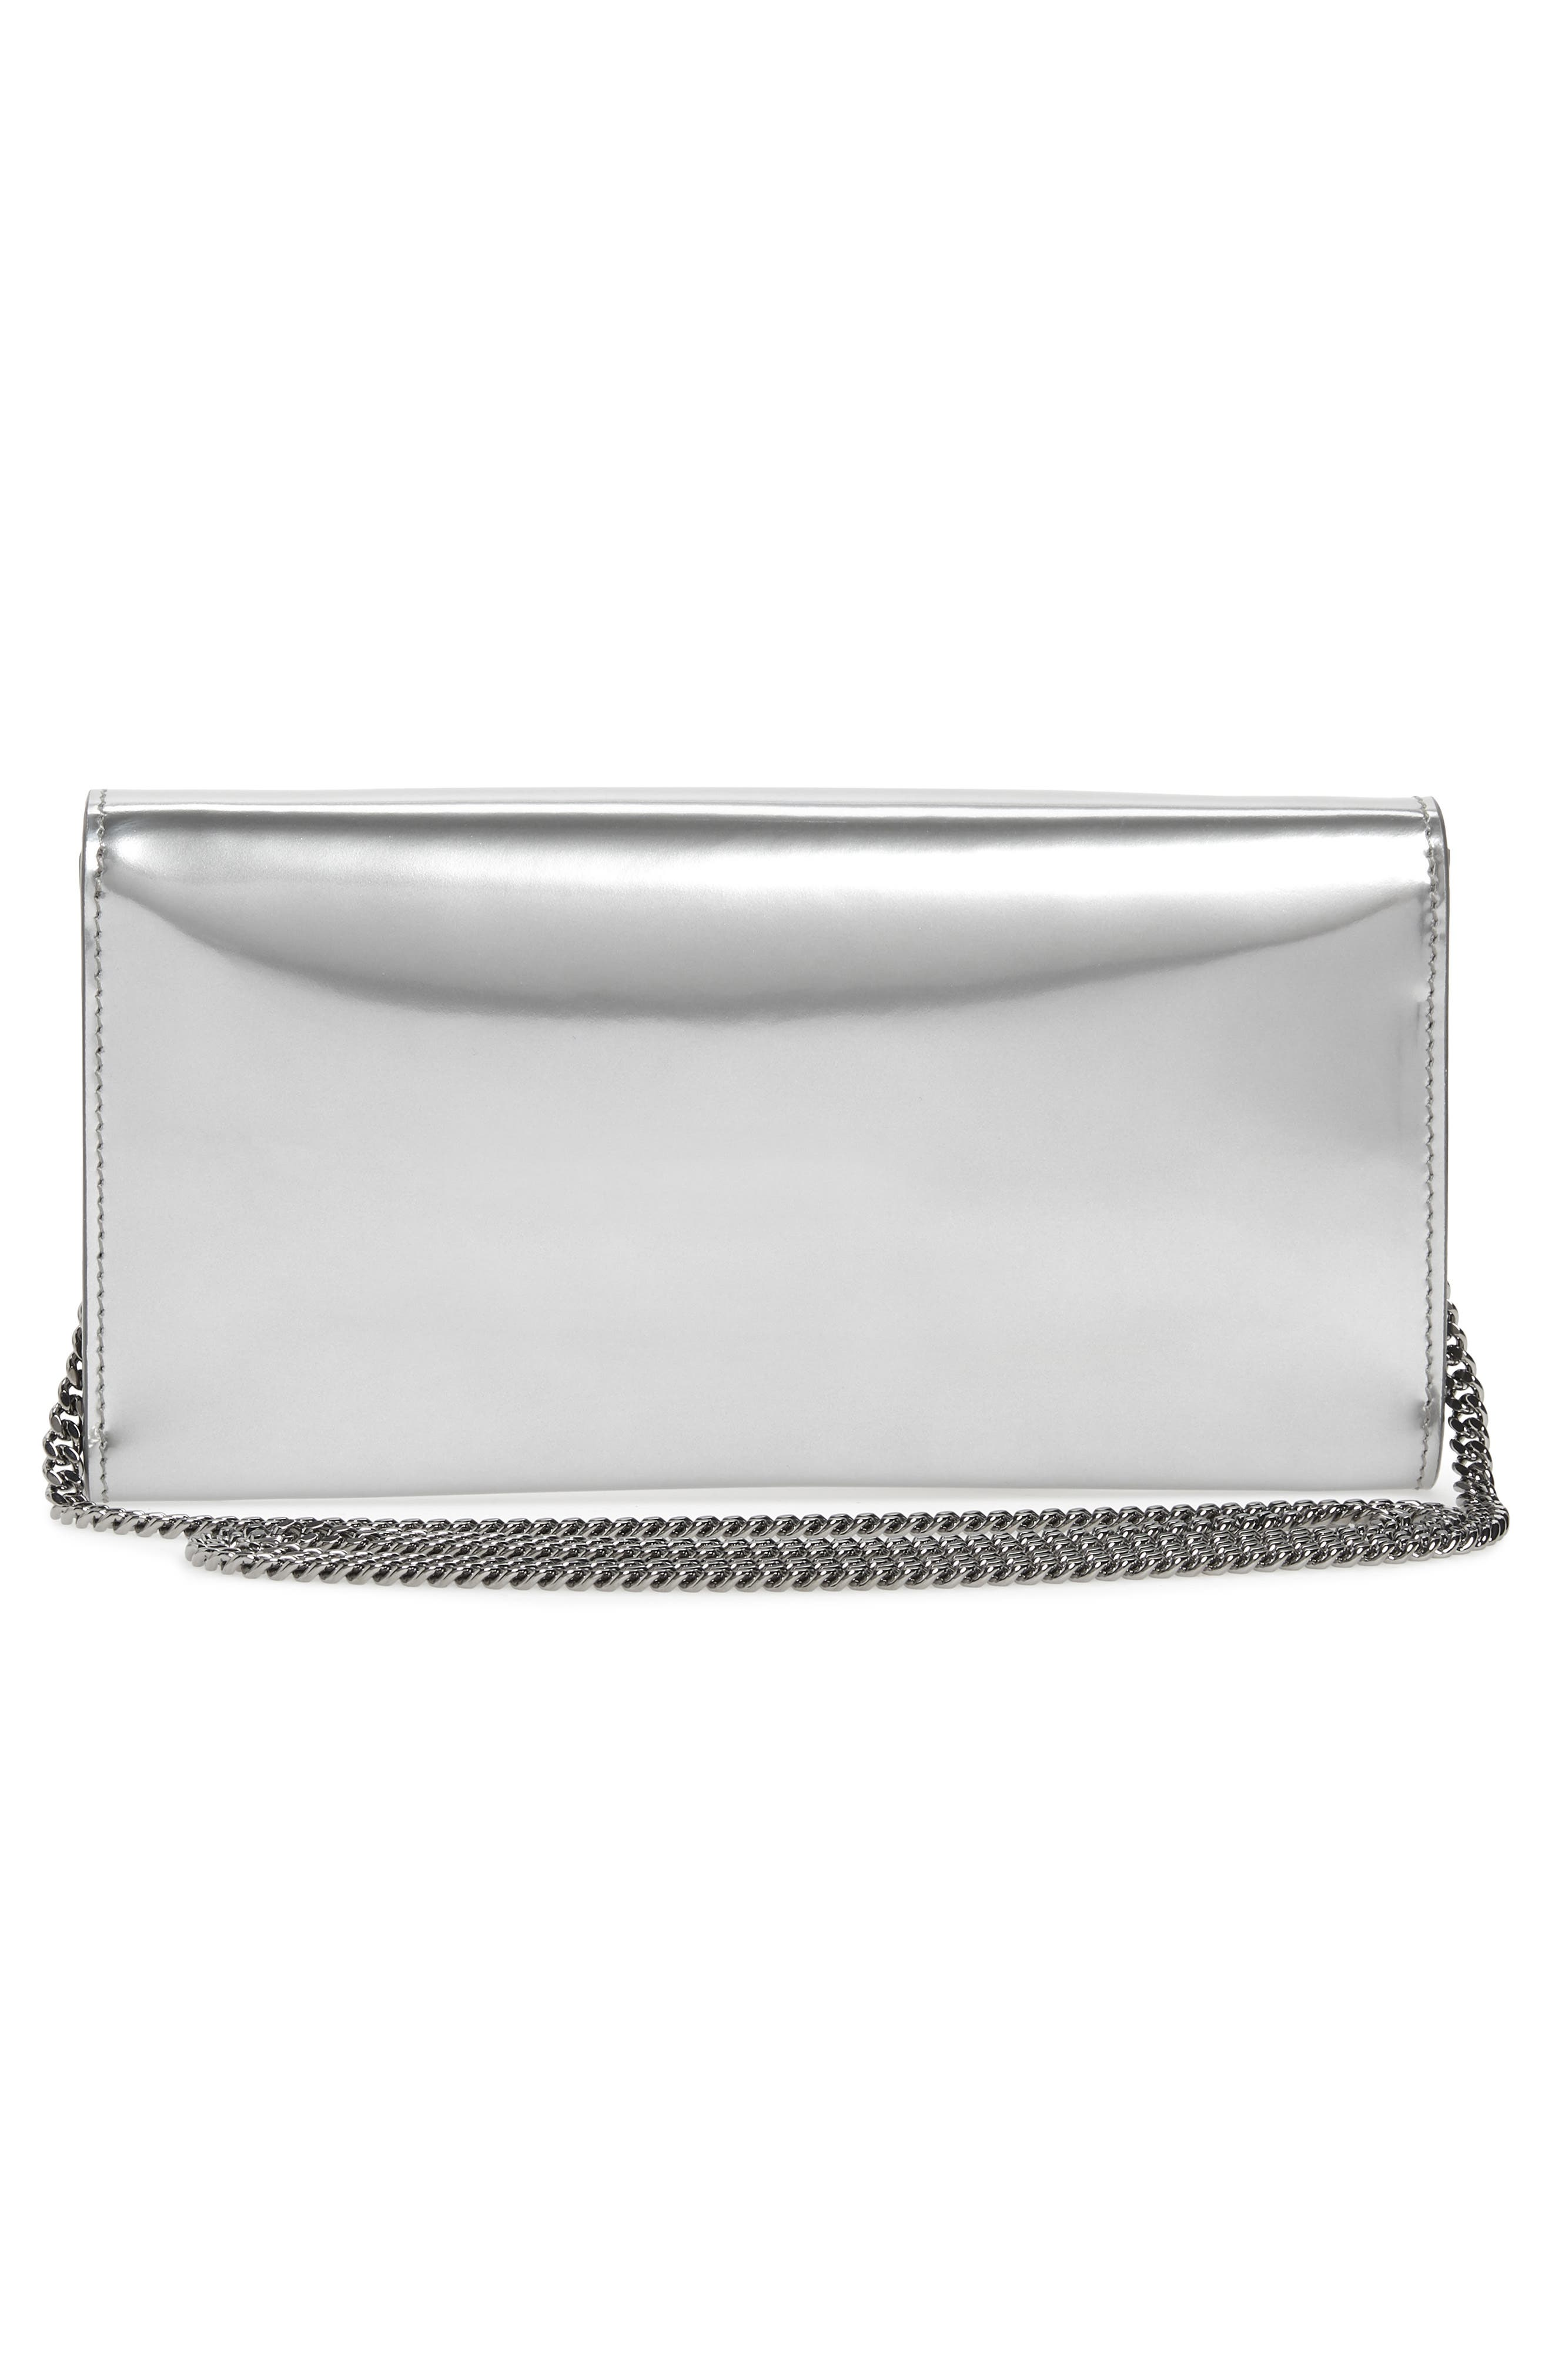 JIMMY CHOO, Emmie Metallic Leather Clutch, Alternate thumbnail 3, color, SILVER